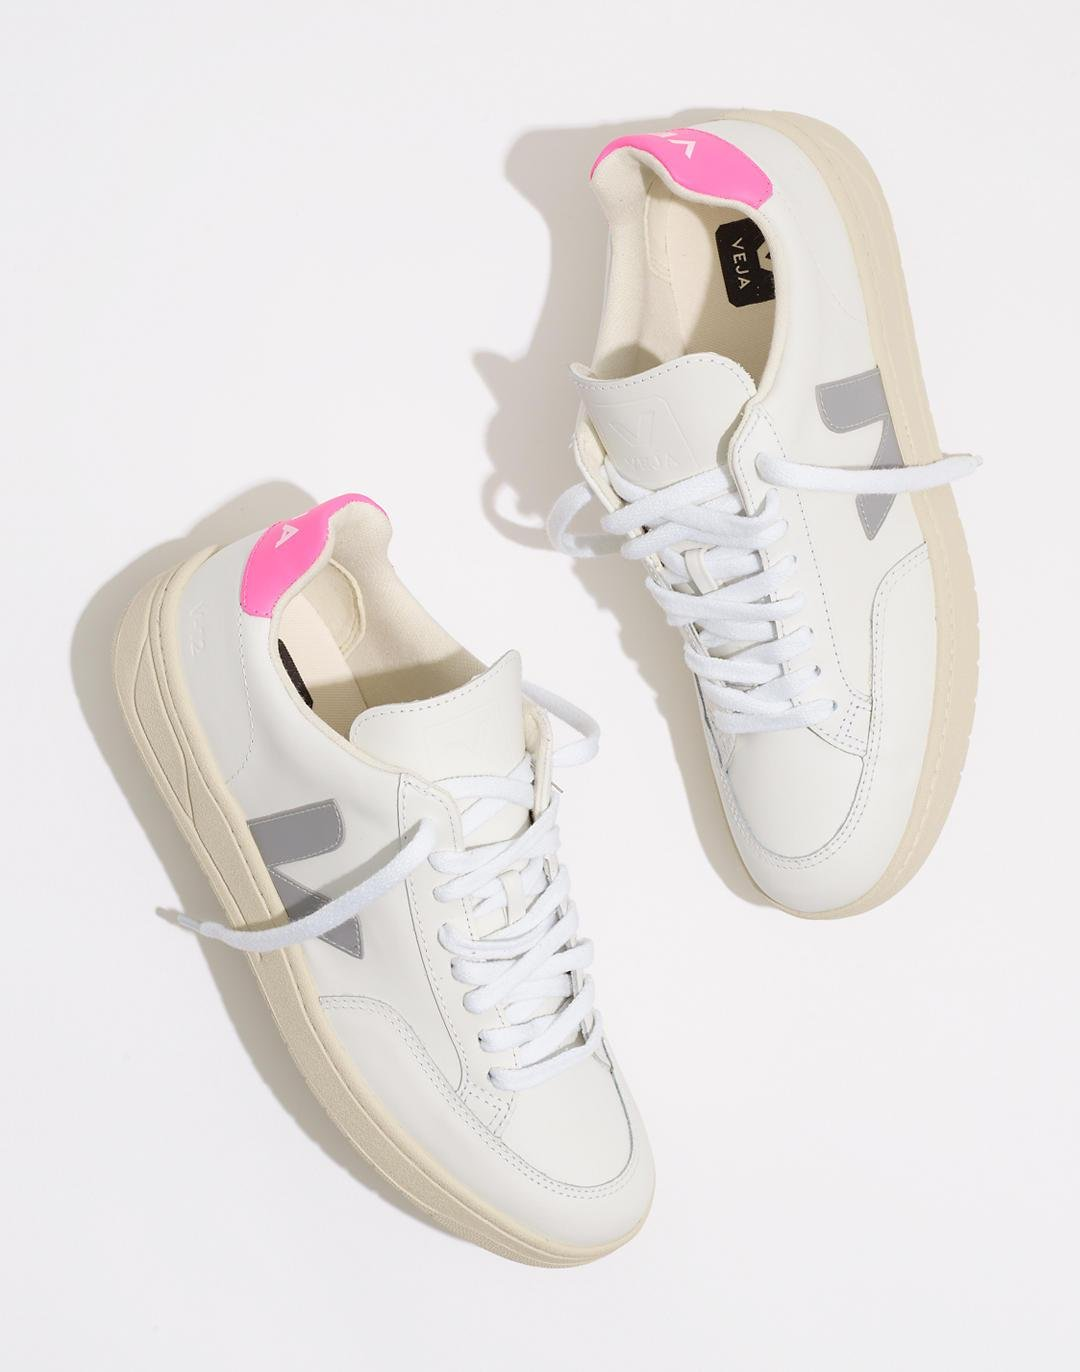 Veja™ Leather V-12 Lace-Up Sneakers in White and Natural